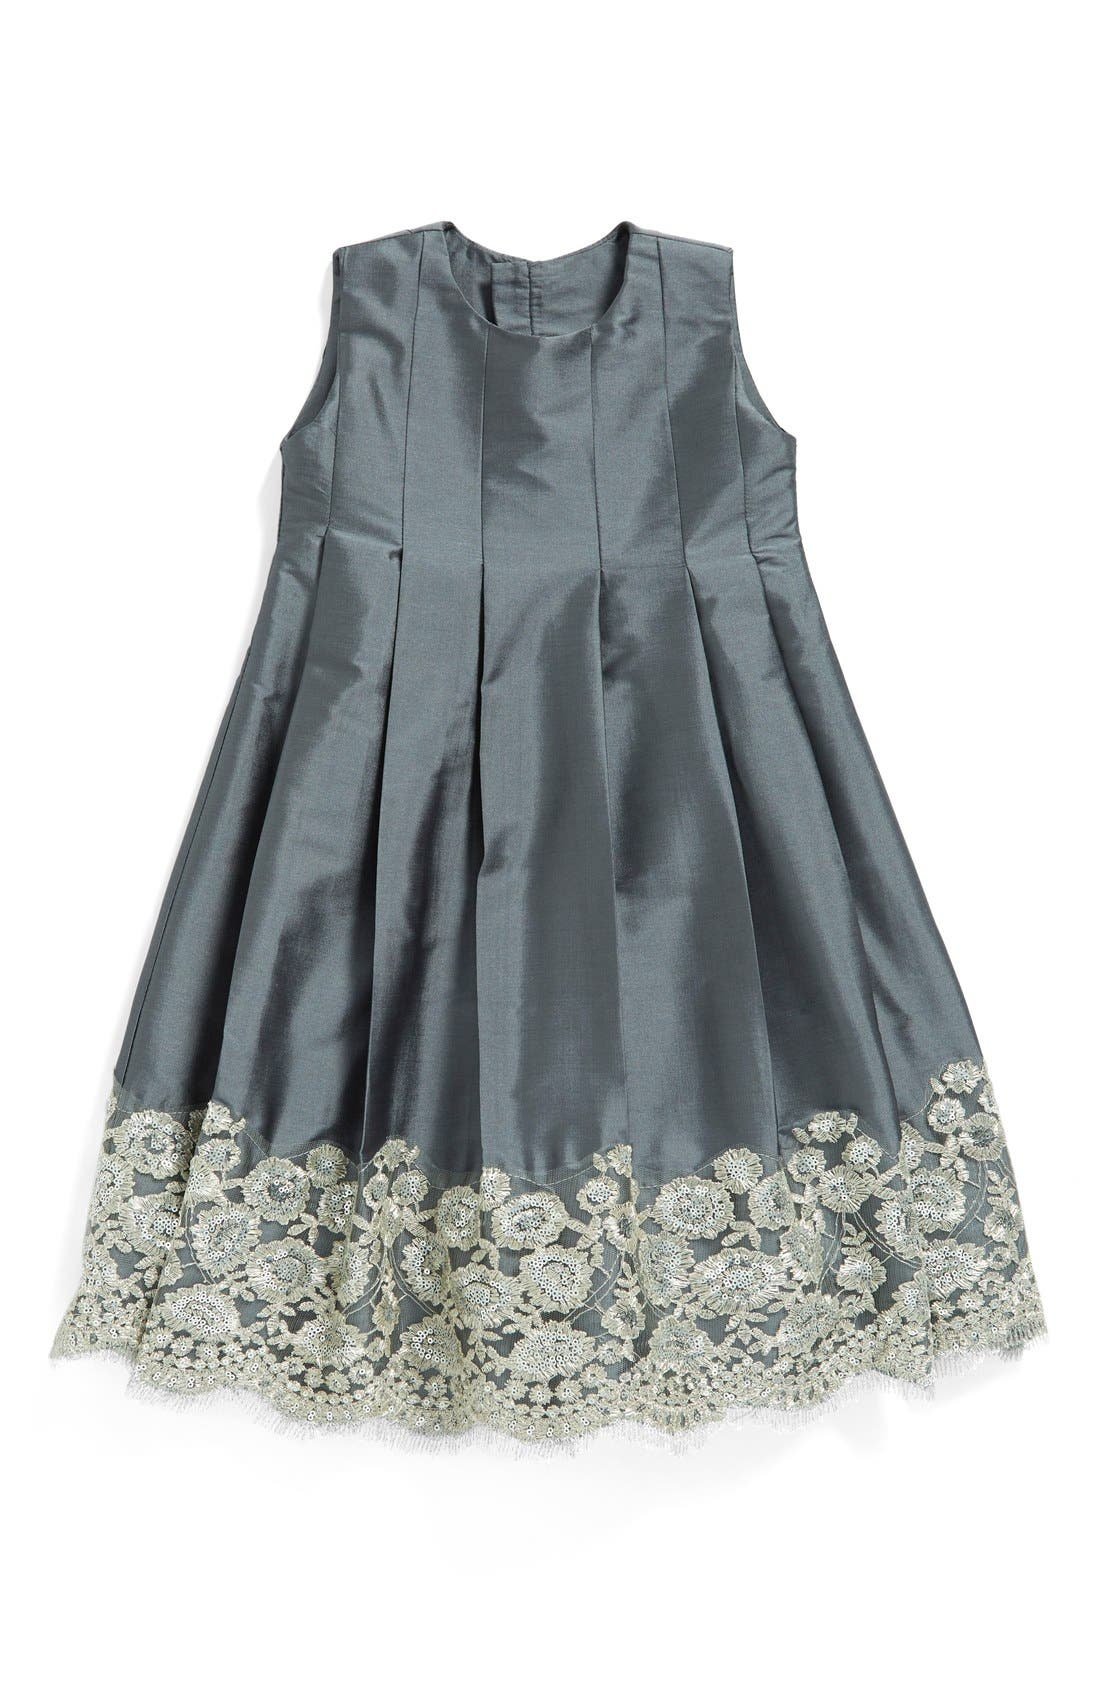 ISABEL GARRETON Sleeveless Taffeta Dress